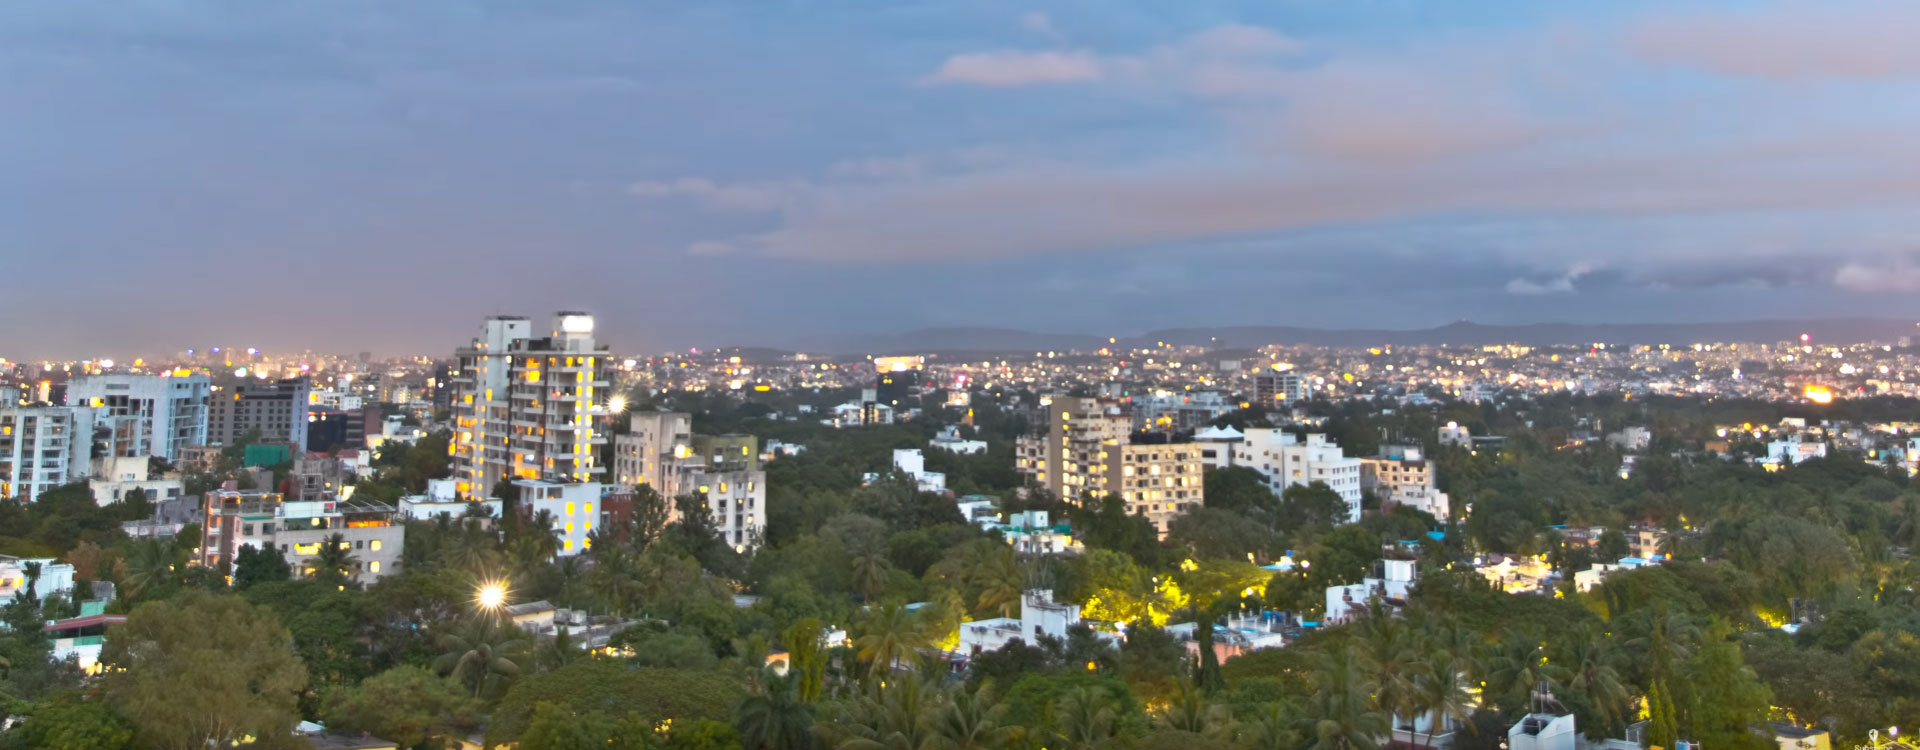 Pune City real estate investment